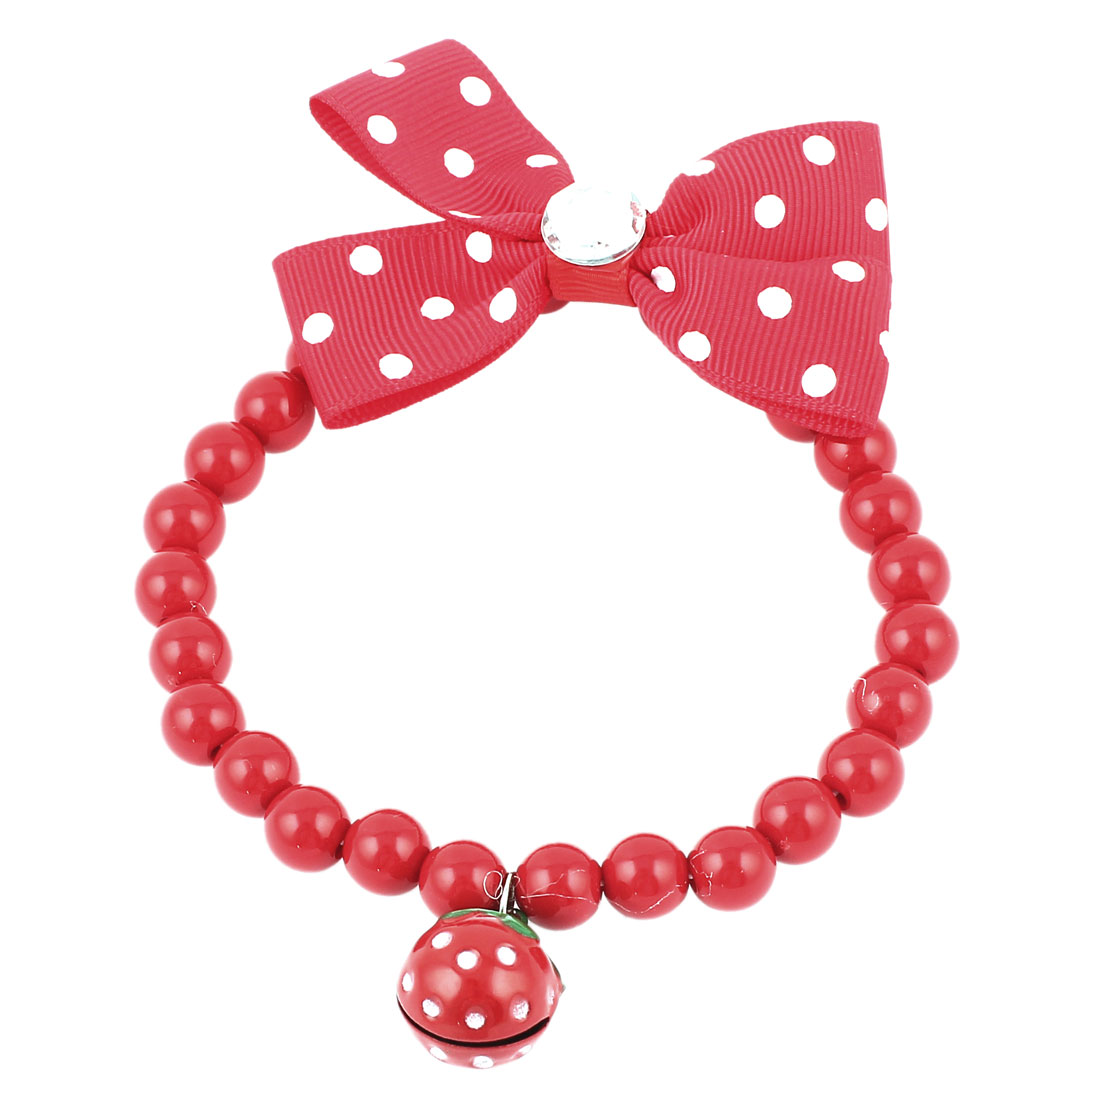 Metal Bell Pendant Bowtie Accent Pet Dog Plastic Beads Collar Necklace Red S